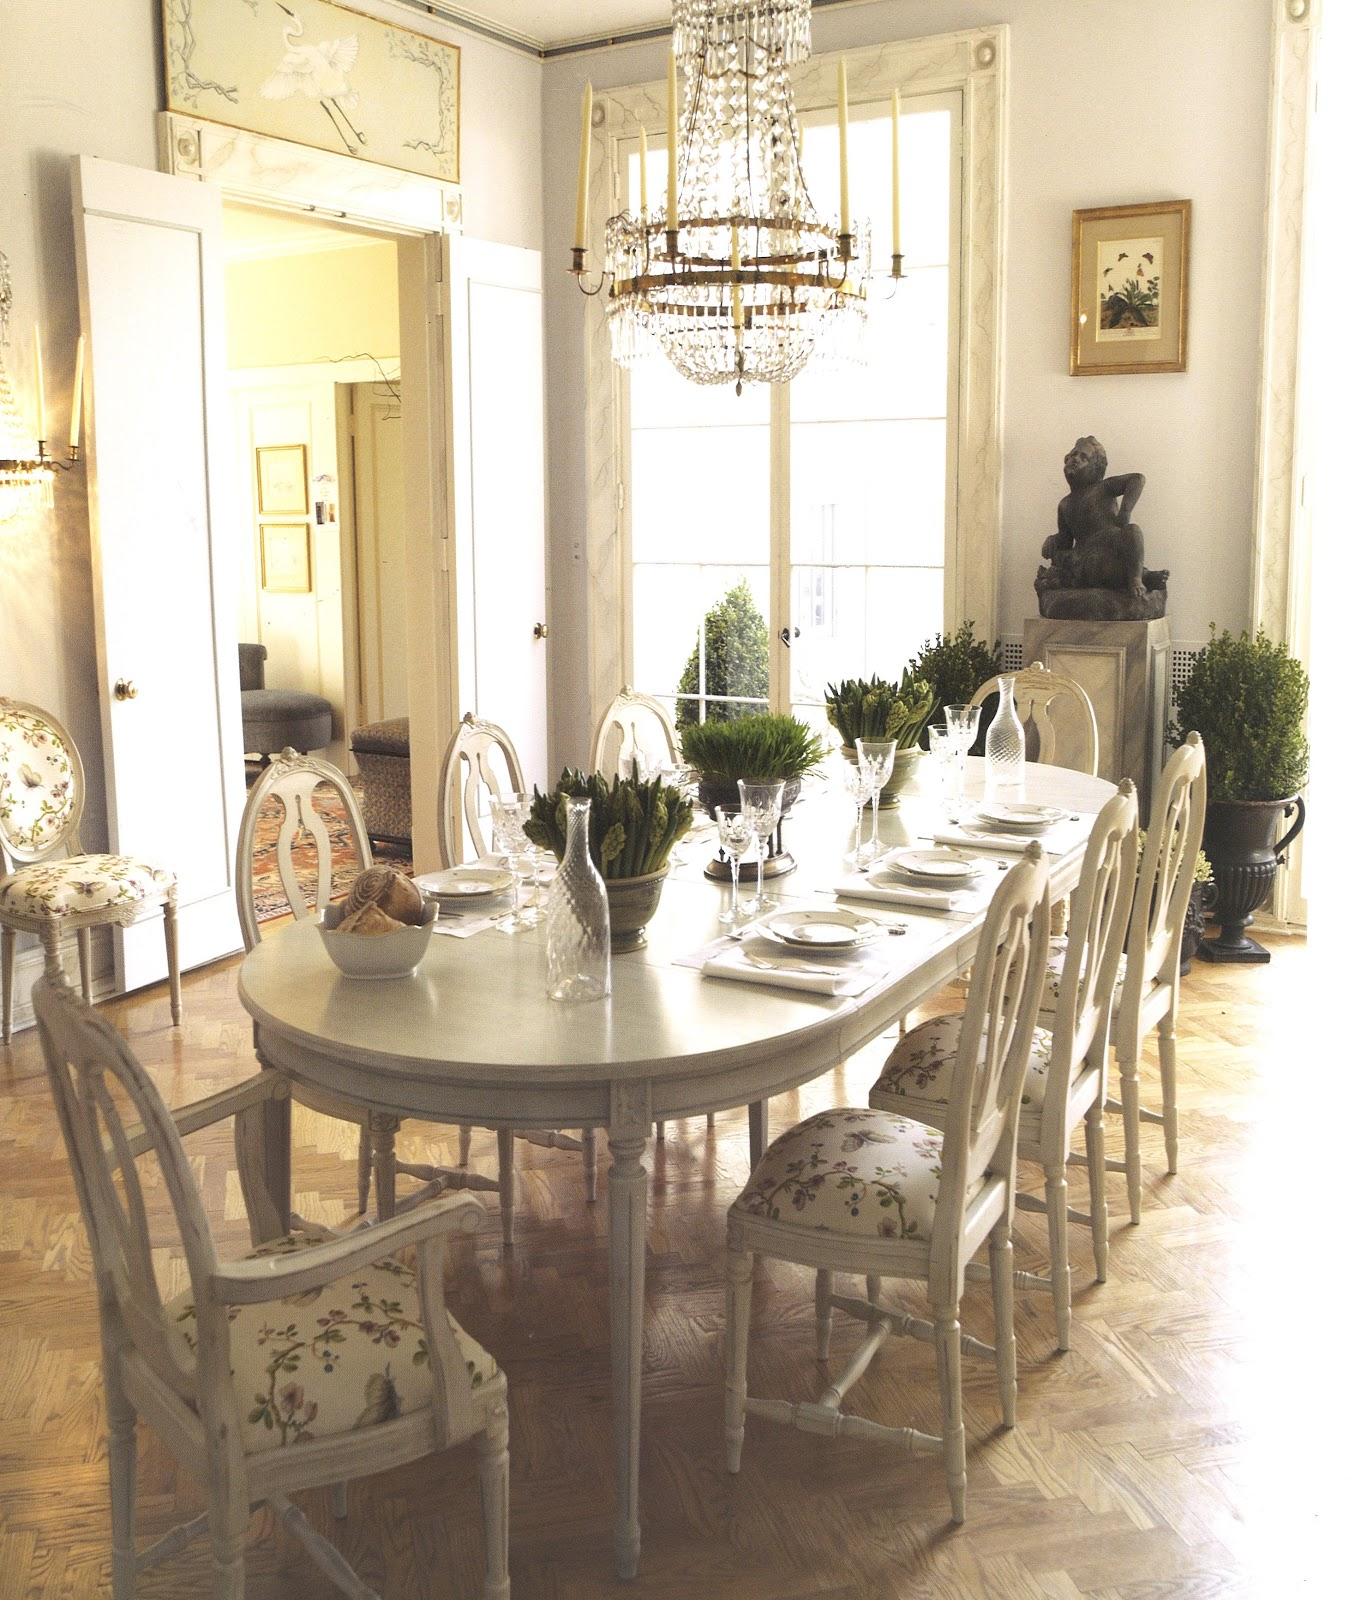 Superb The Dining Table Comes From My Favorite Source For Reproduction Gustavian  Furniture, Country Swedish. The Painted Cupboard Was Inherited; It Belonged  To My ...